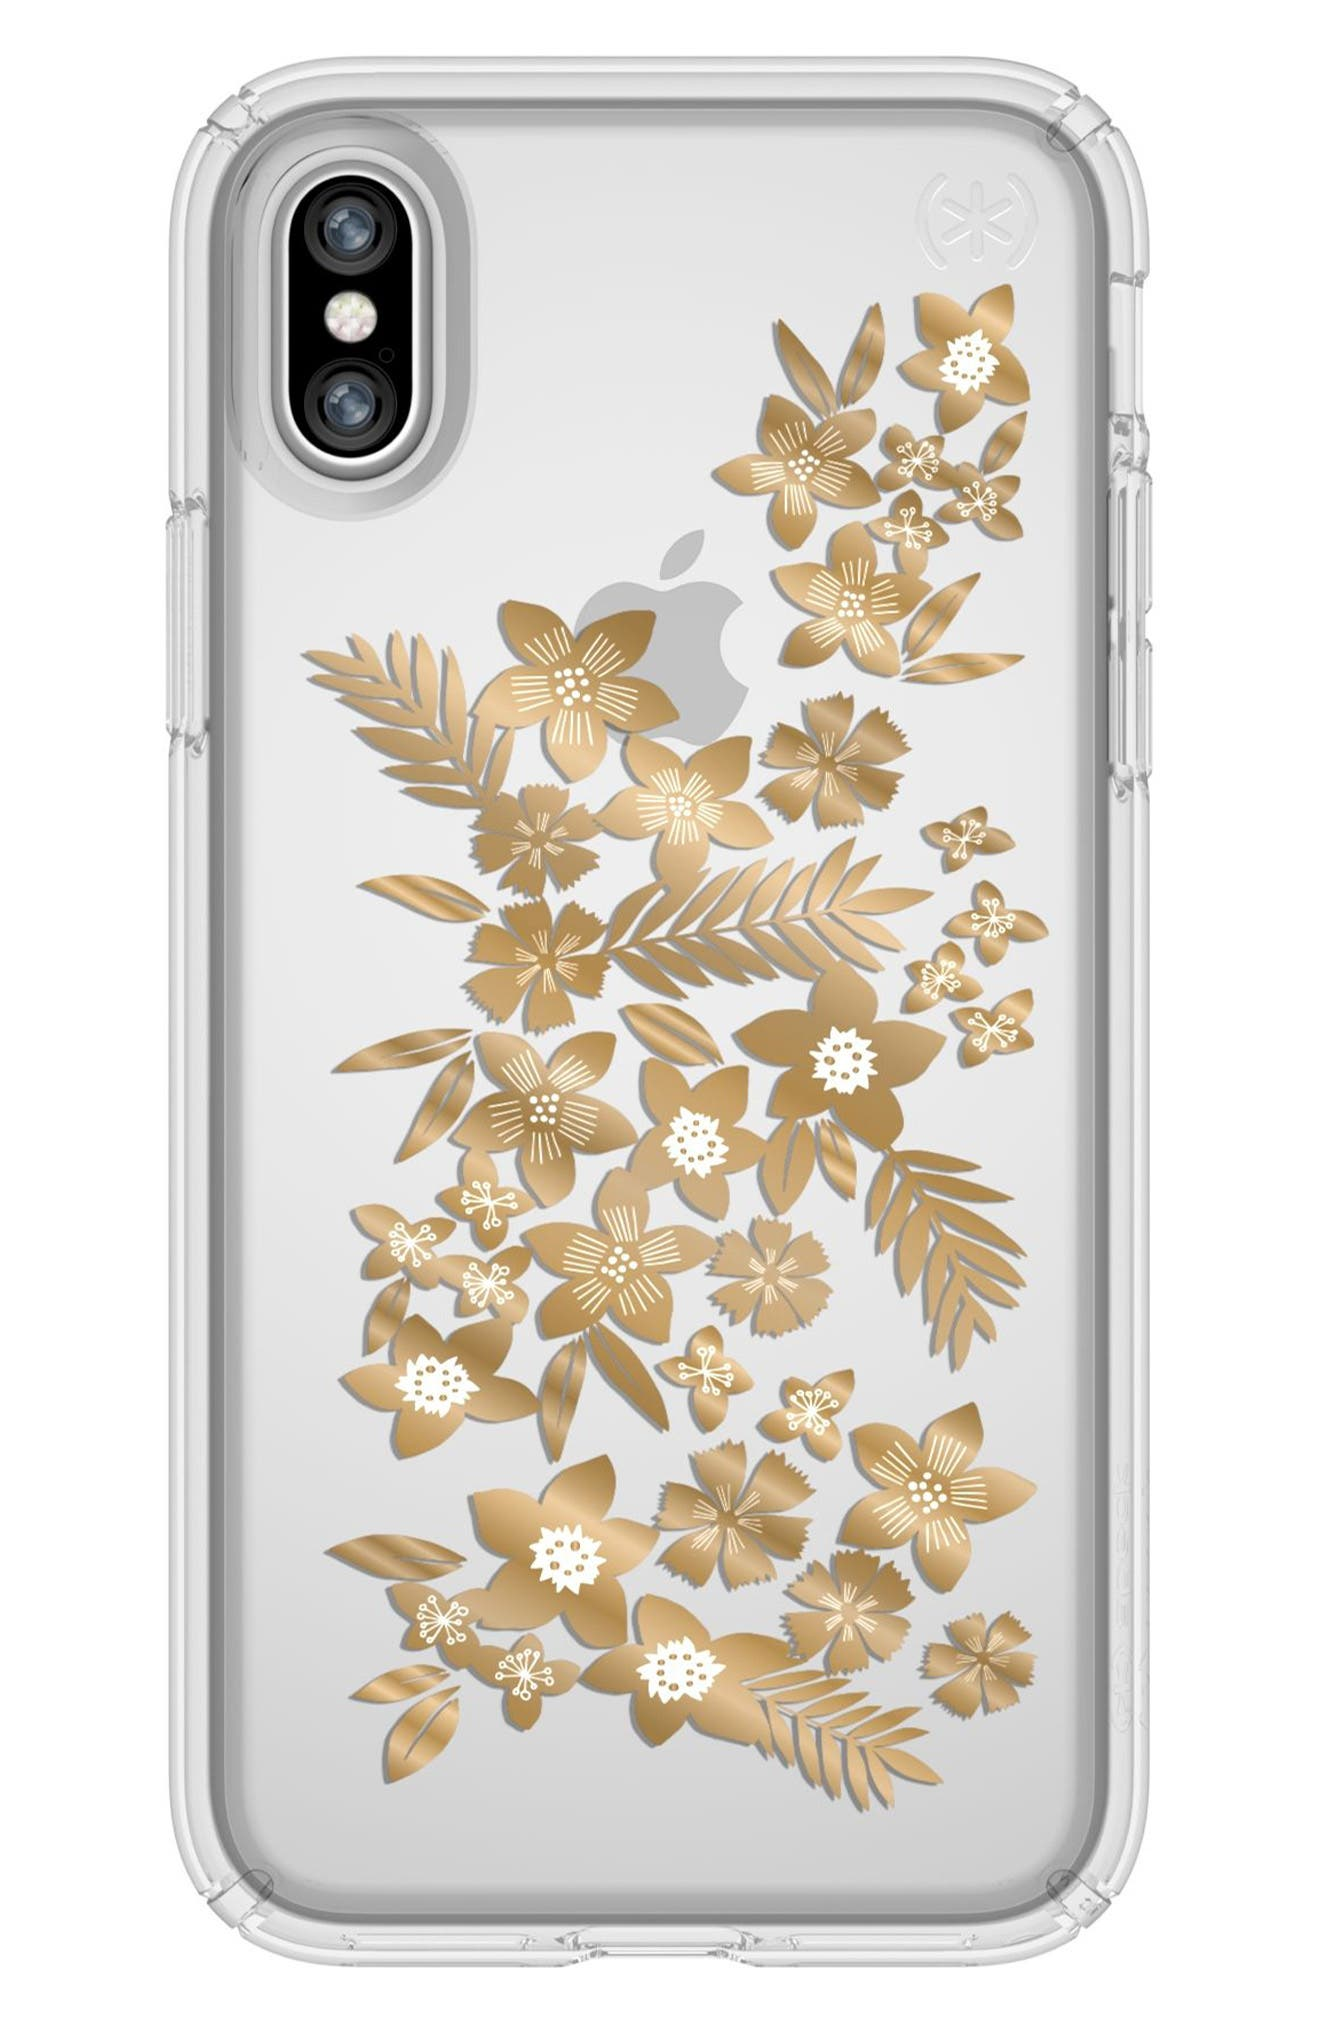 Shimmer Metallic Floral Transparent iPhone X & Xs Case,                         Main,                         color, SHIMMER FLORAL METALLIC/ CLEAR